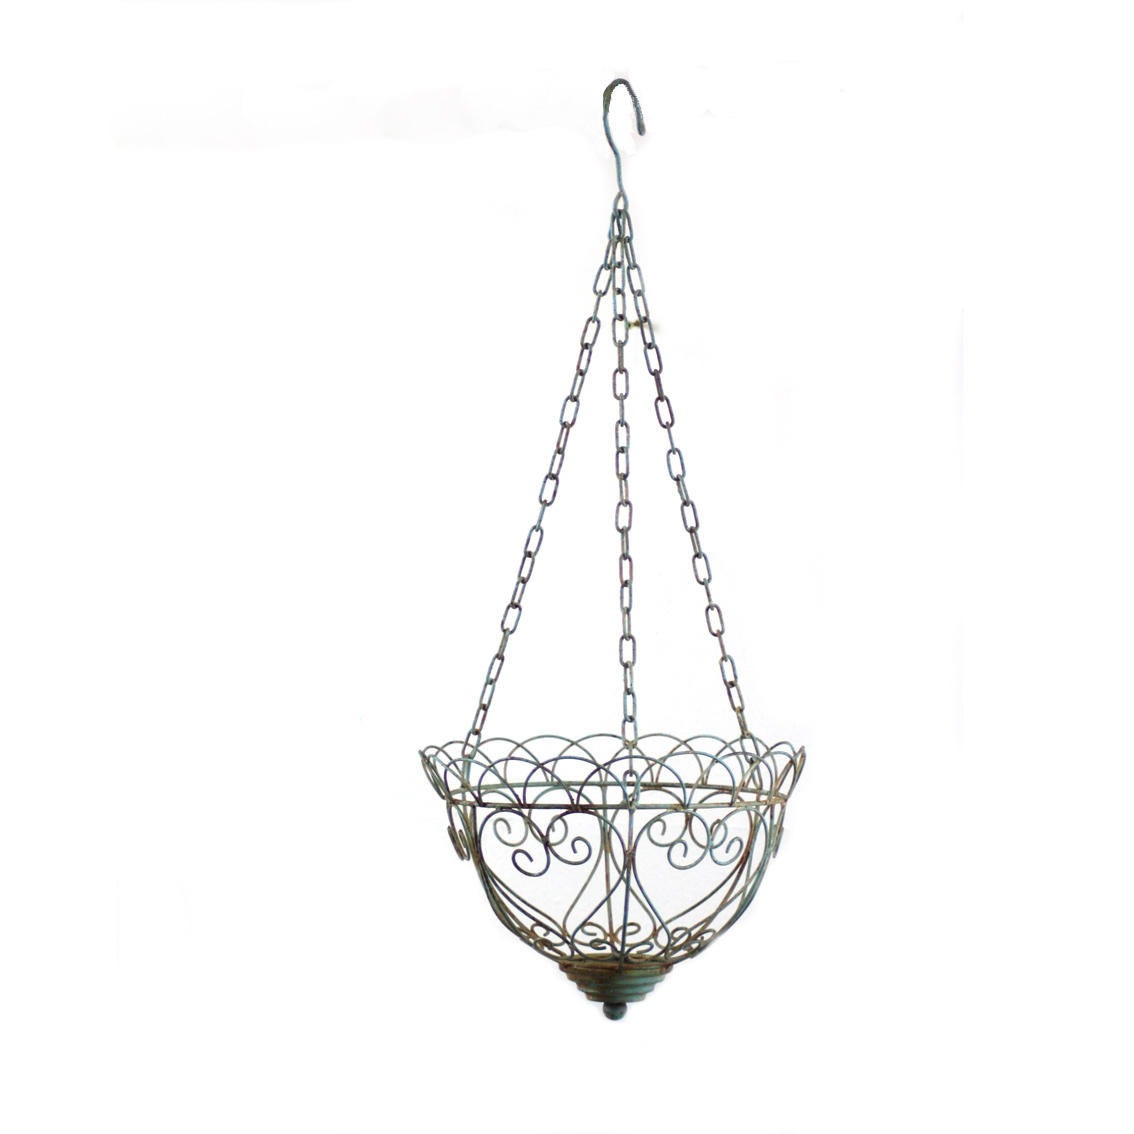 Hanging Plant Holder All Chic Home And Garden